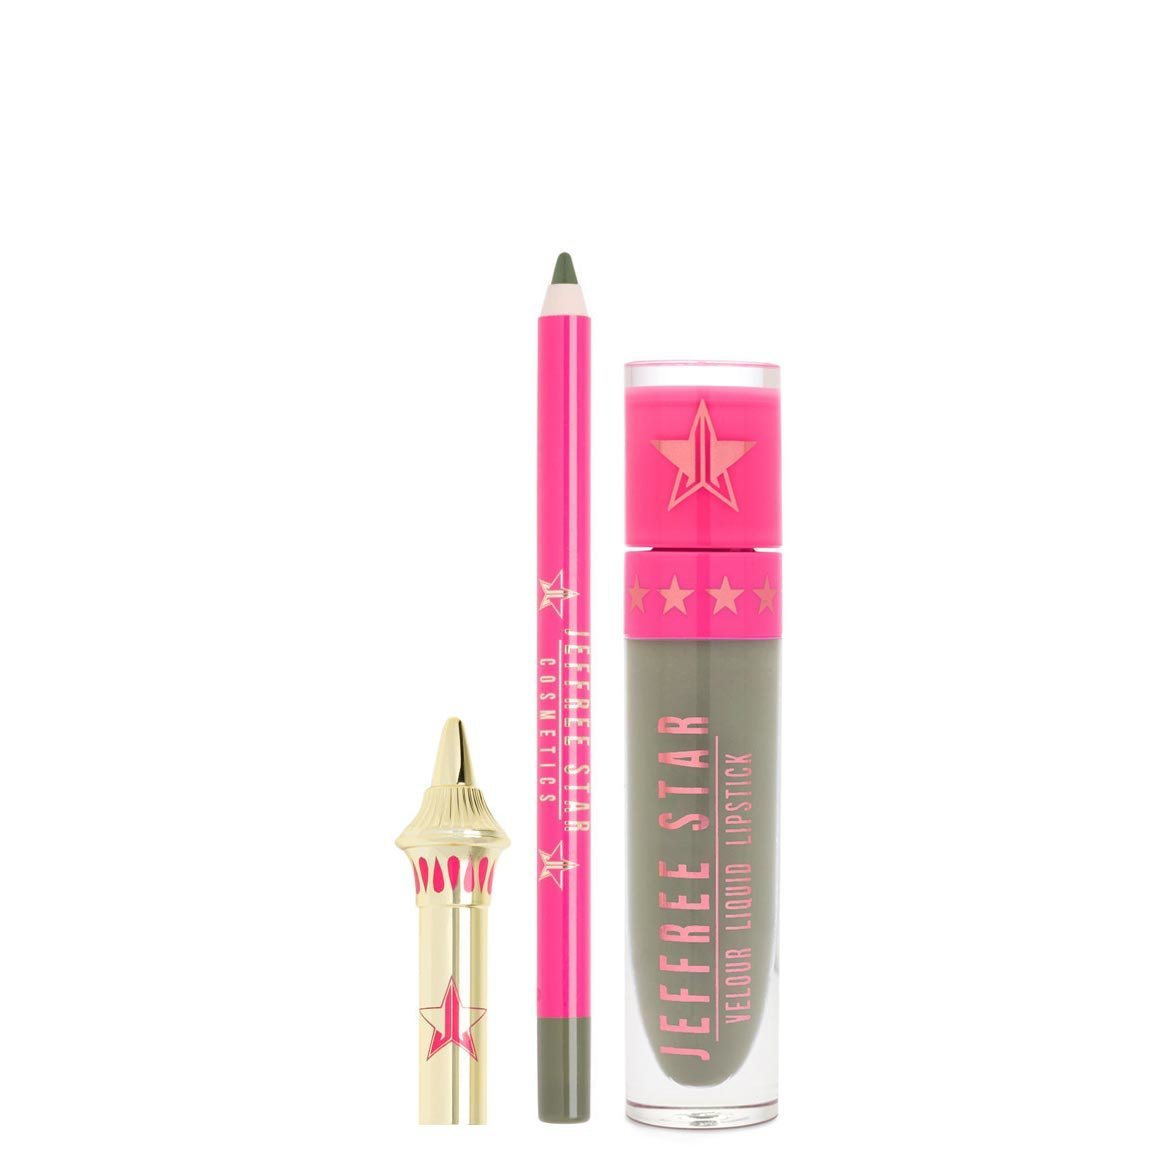 Jeffree Star Cosmetics Velour Lip Kit Dirty Money